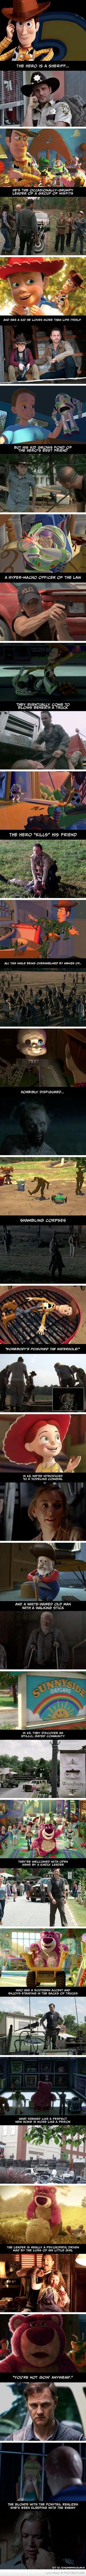 @Cassie Roberts Proof That The Walking Dead And Toy Story Have The Exact Same Plot